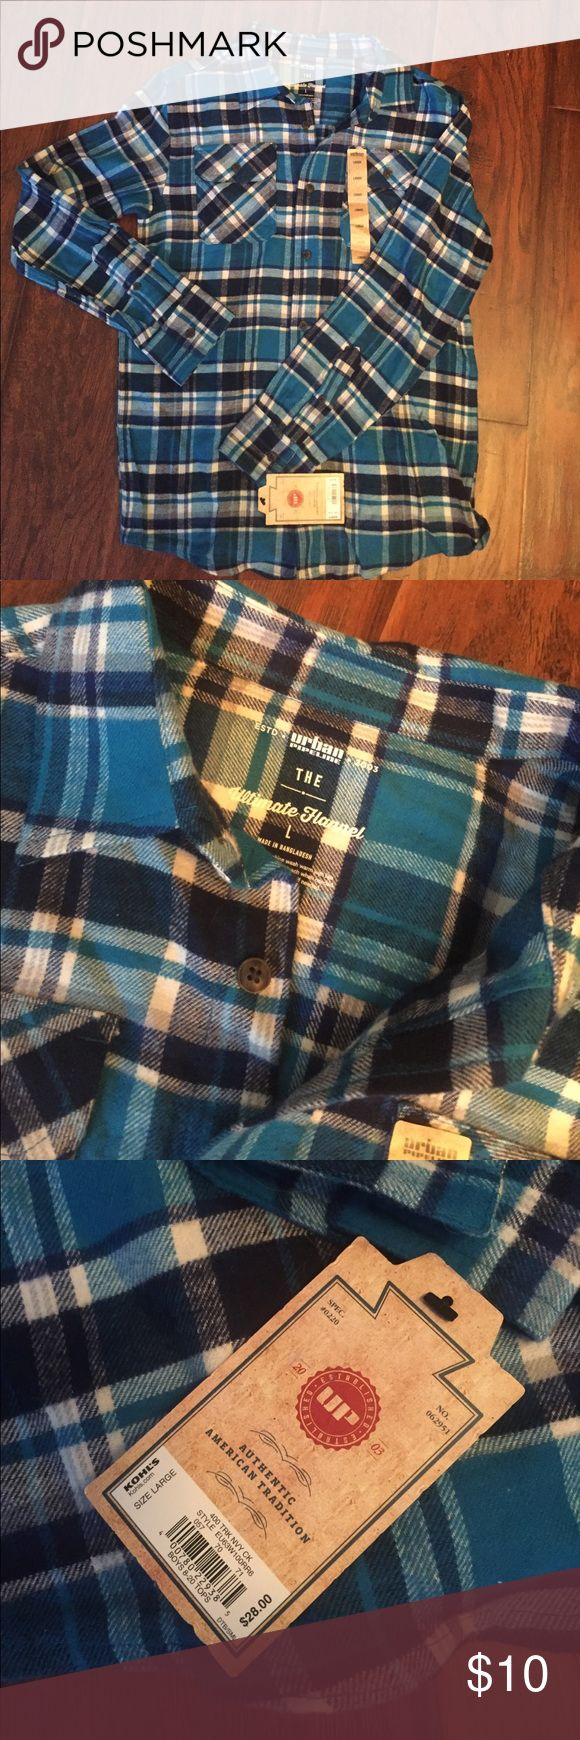 Shirt NWT flannel Urban Pipeline shirt. Size large. Primarily turquoise in color with accents of black and white. 💯 % cotton Shirts & Tops Button Down Shirts